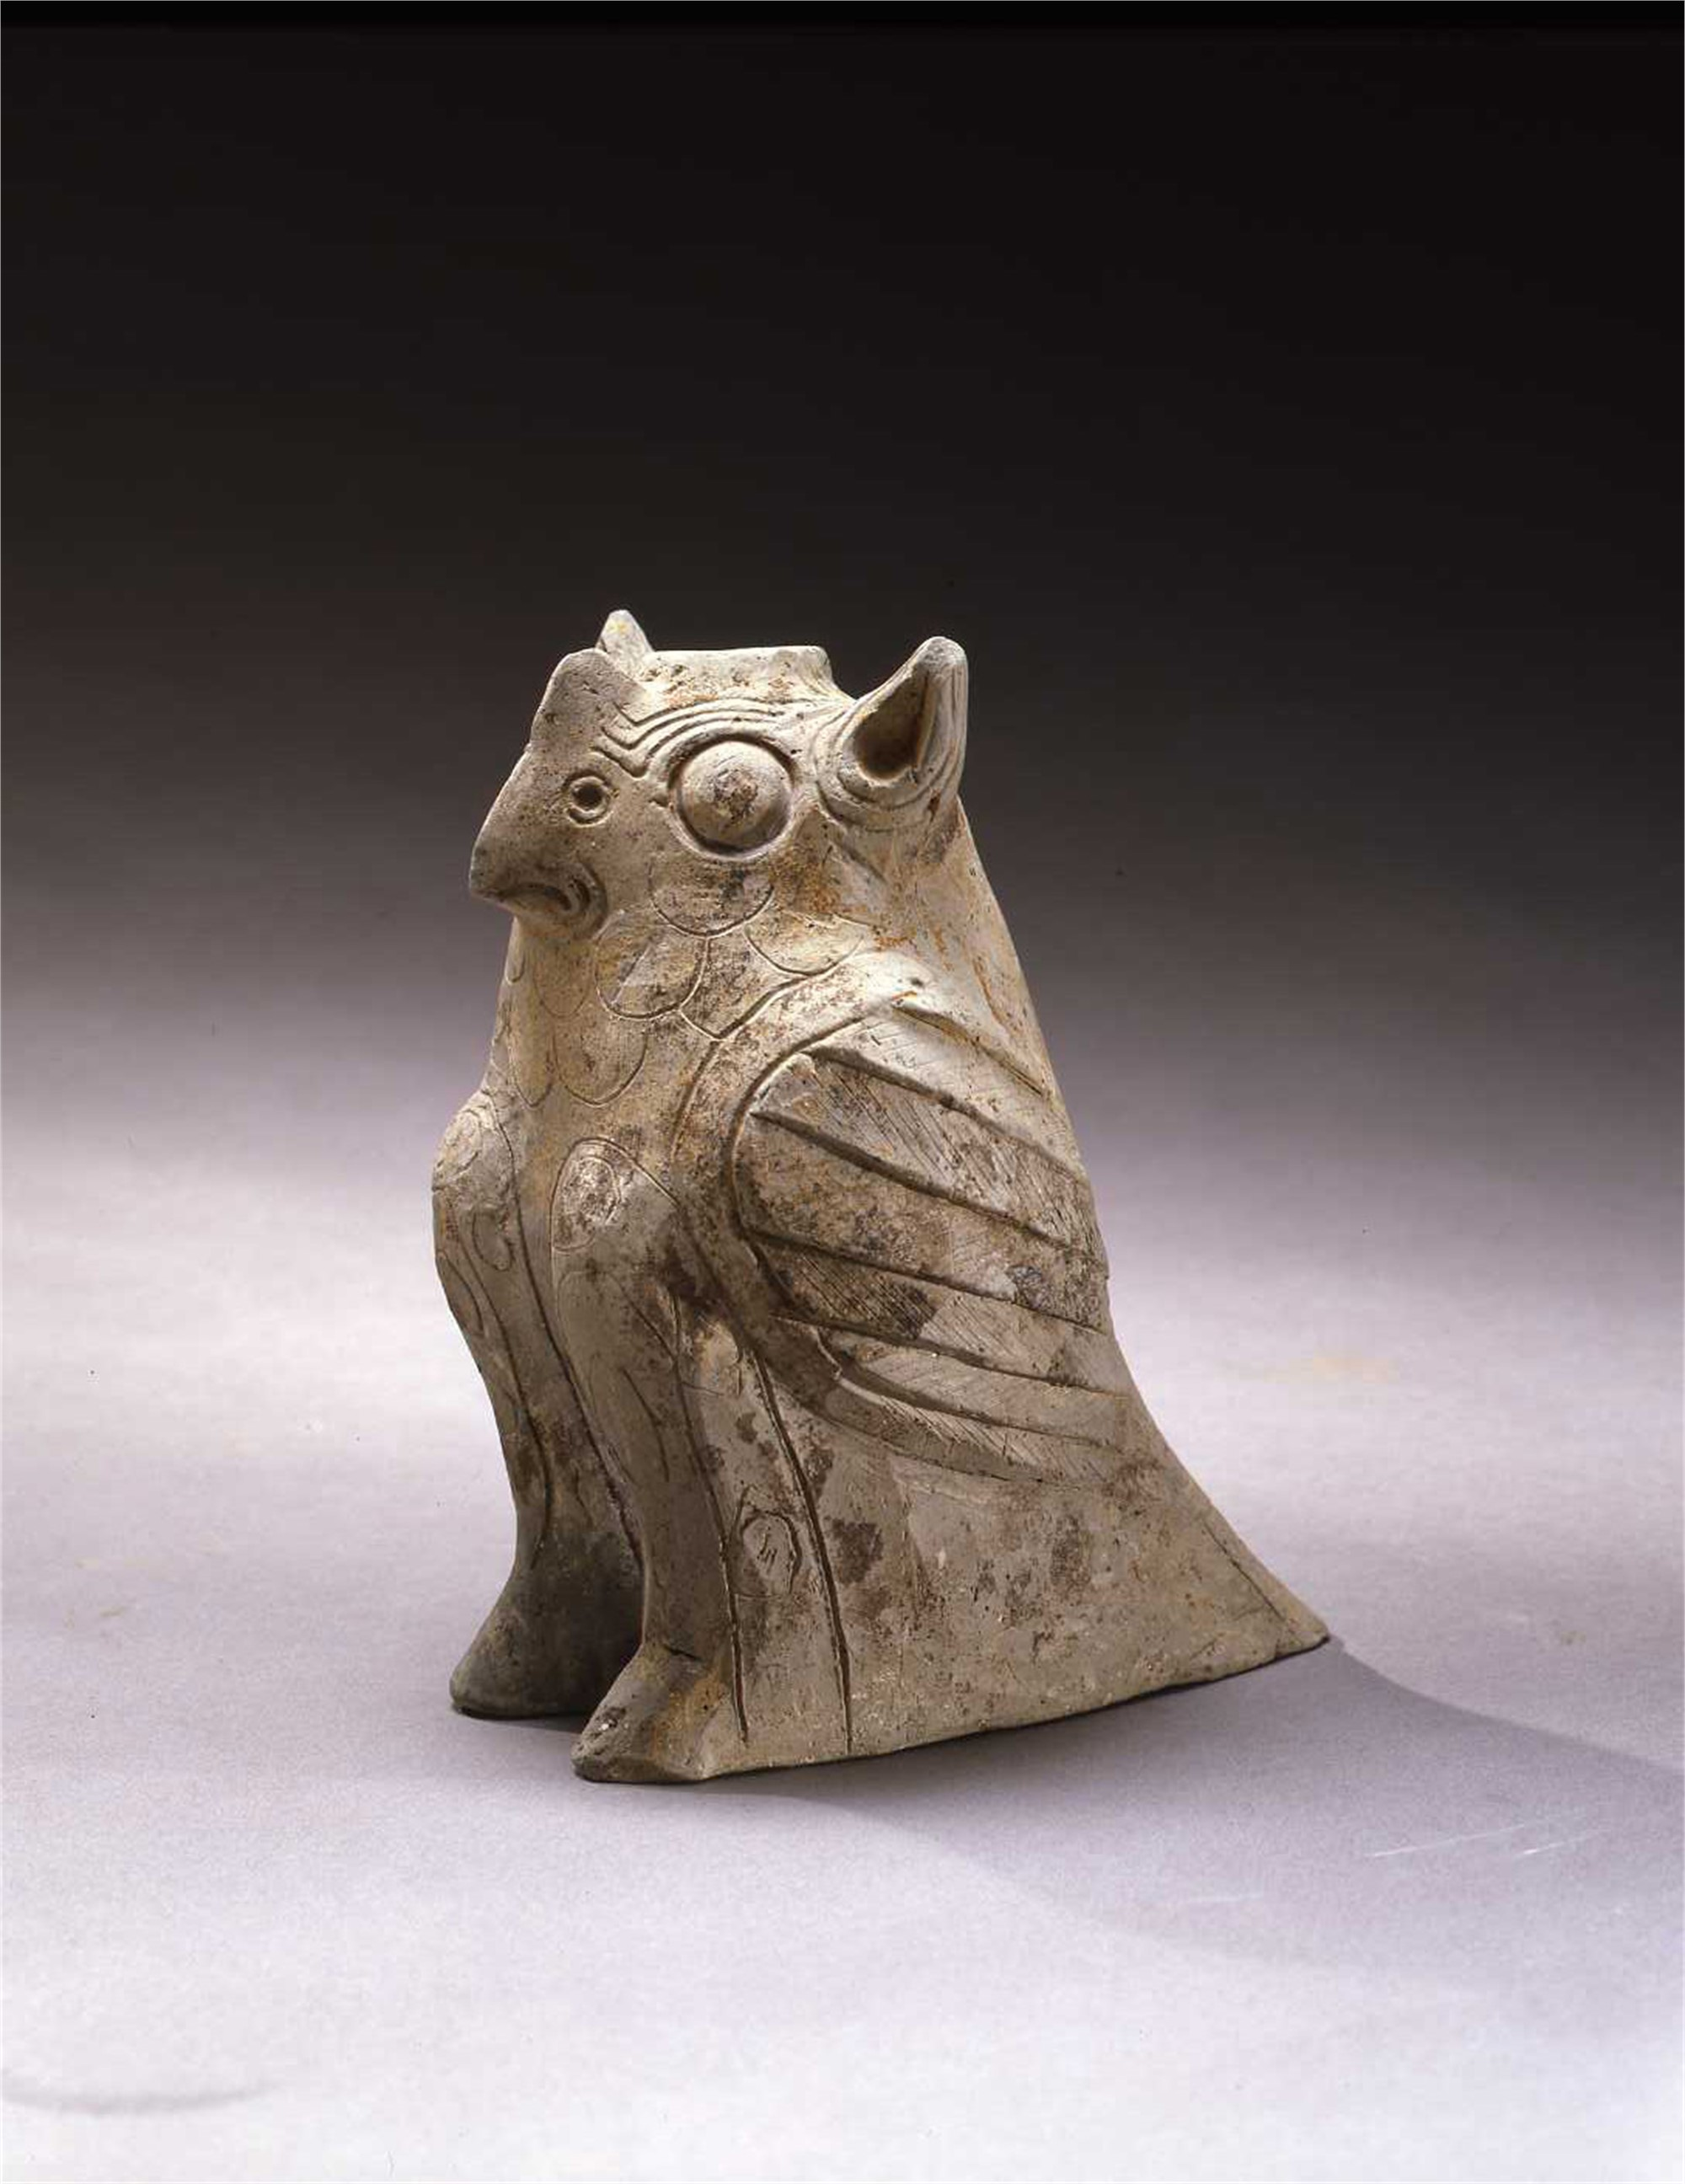 POTTERY FIGURE OF AN OWL